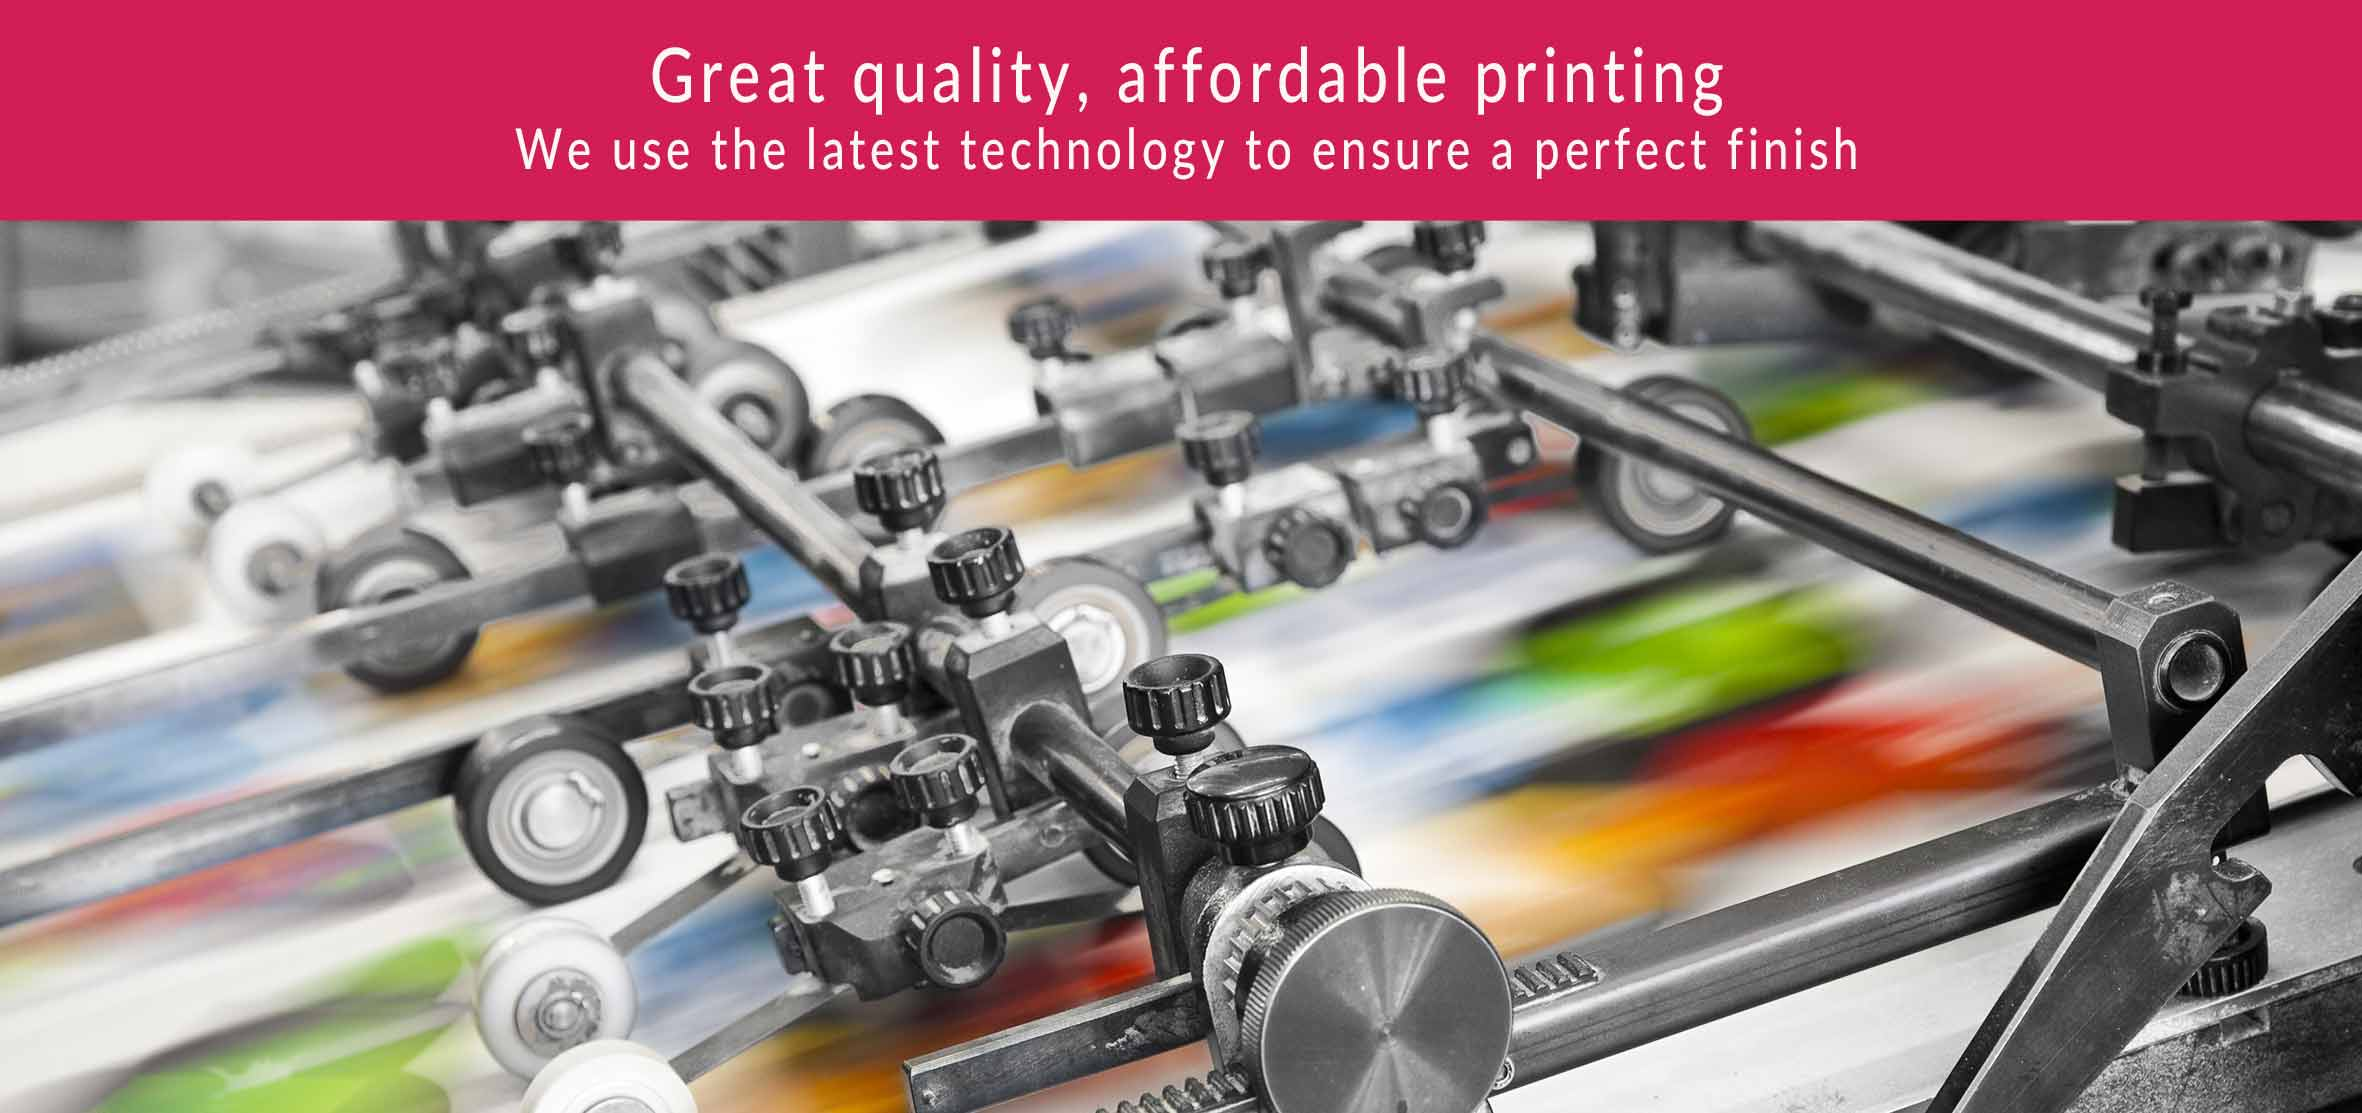 Great quality affordable printing